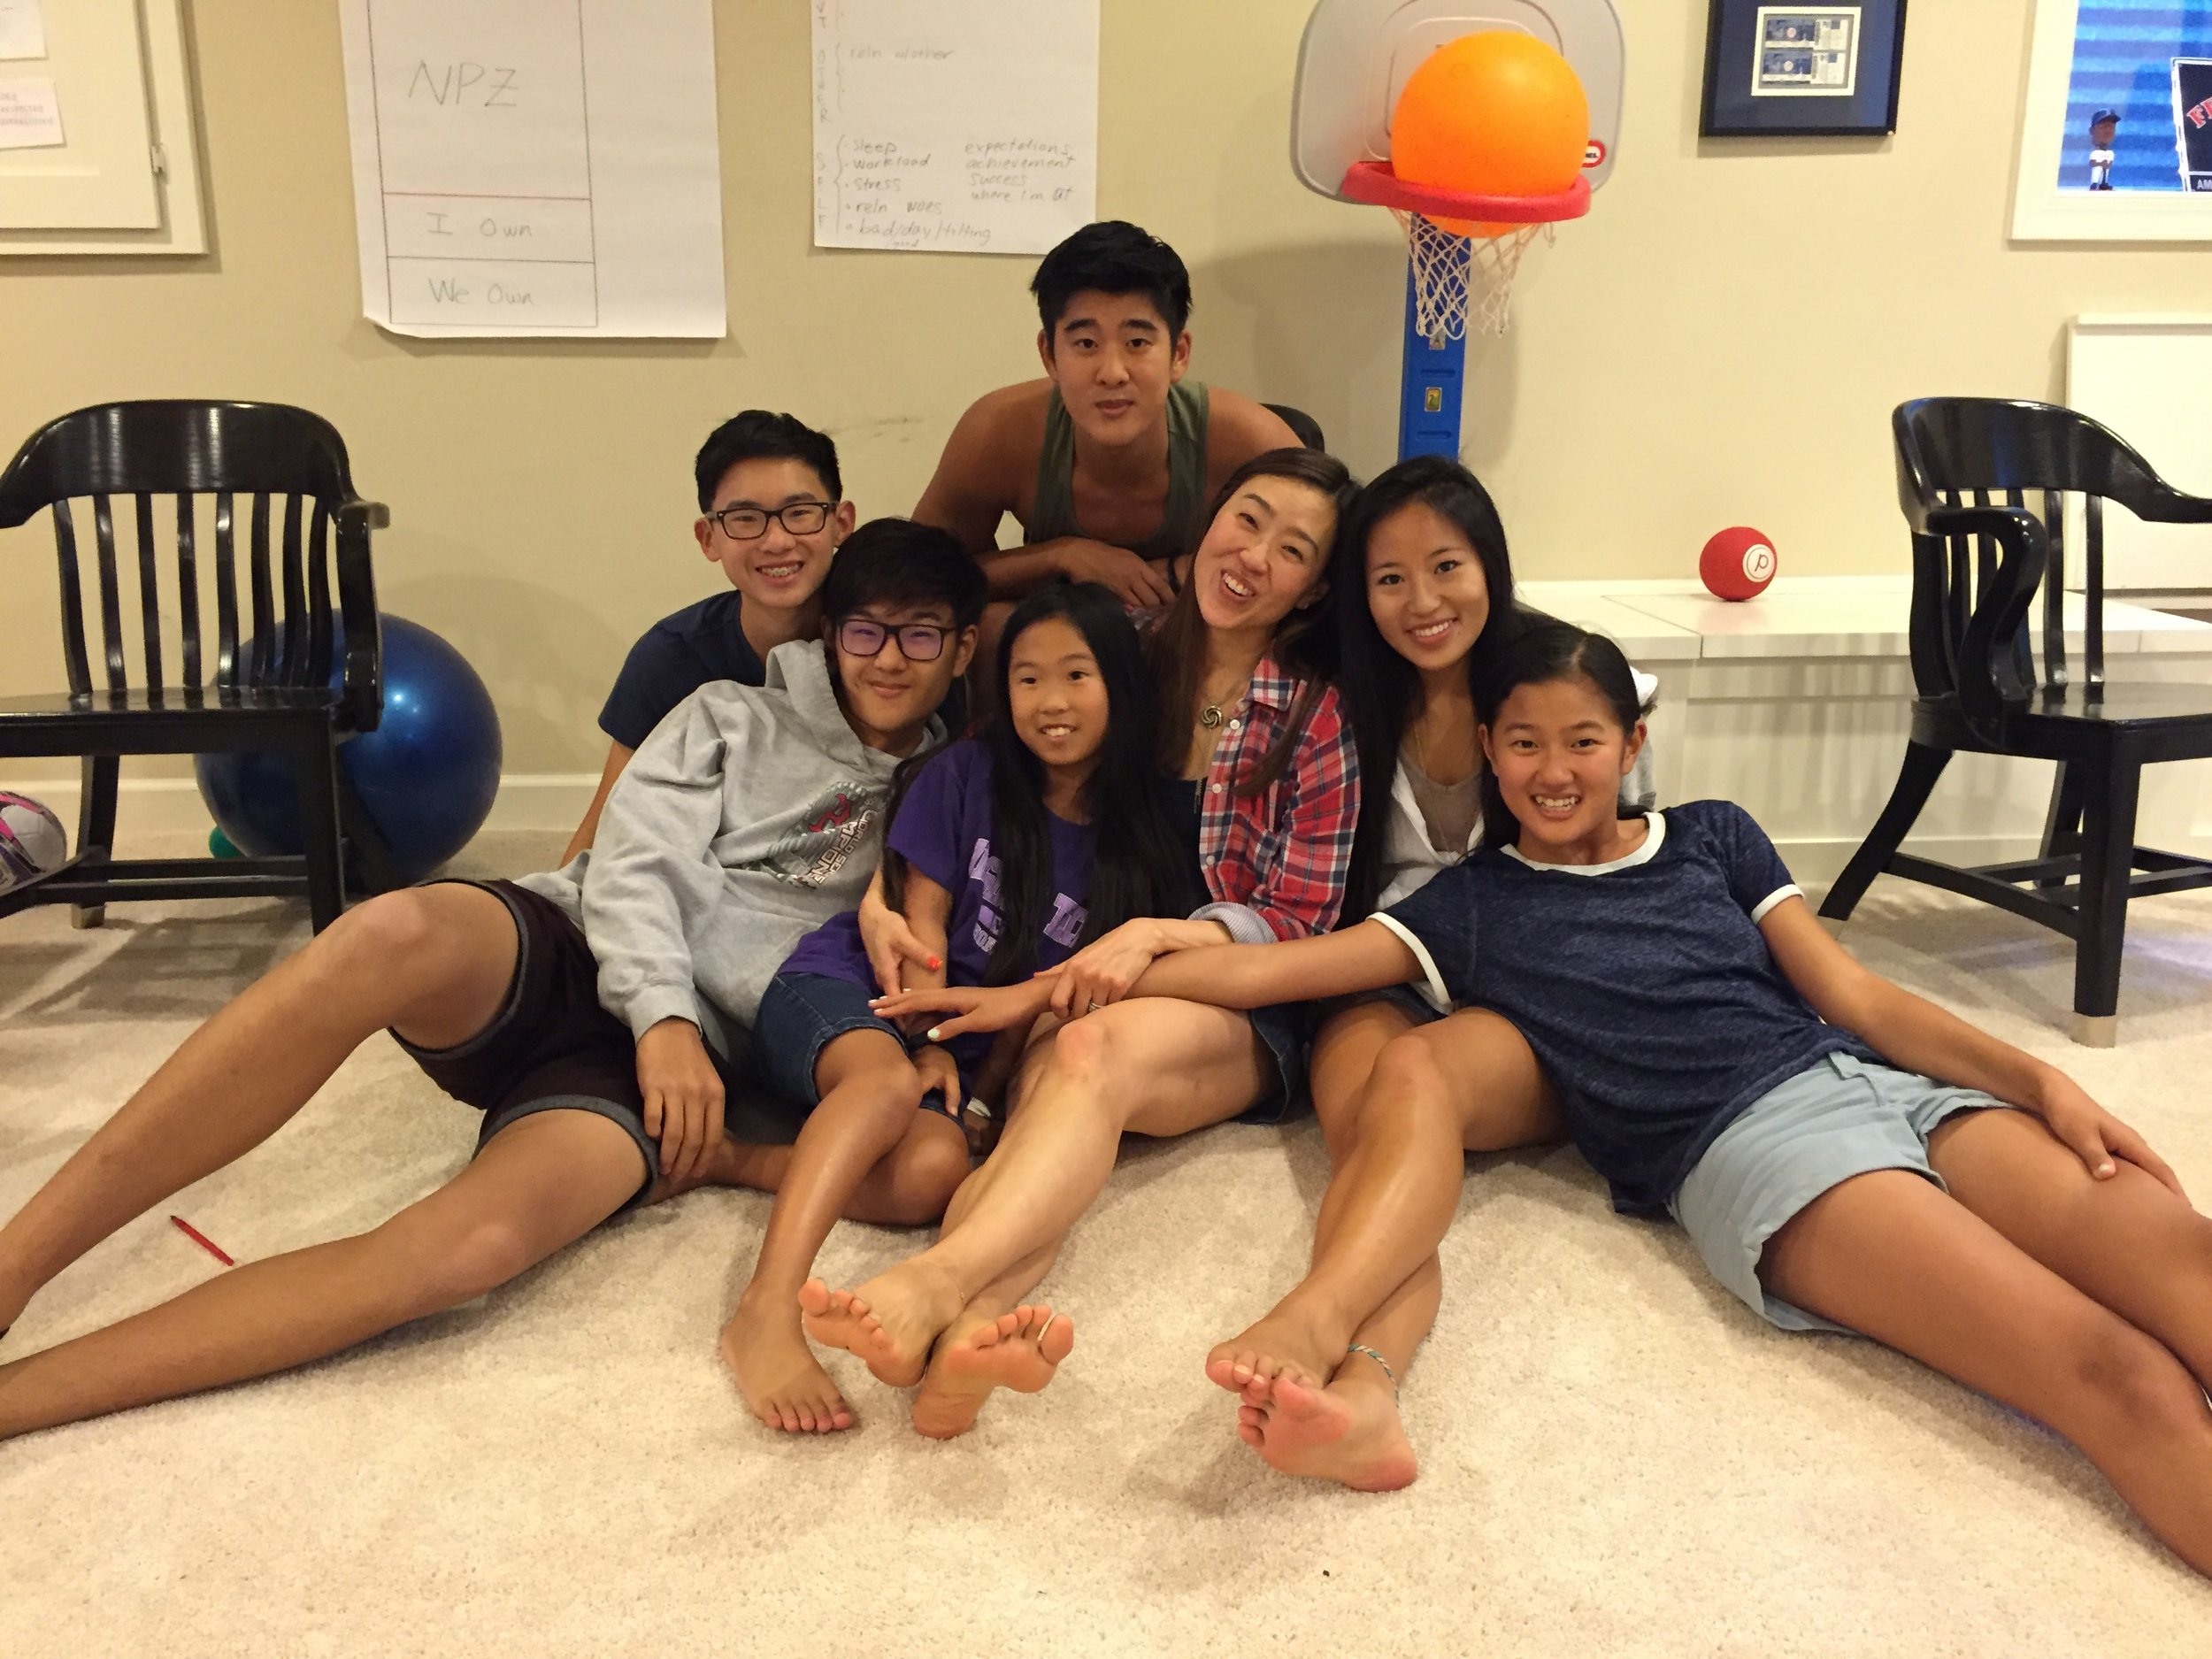 First ever Youth Effectiveness Training class with my three kids, nephew, niece and family friend!